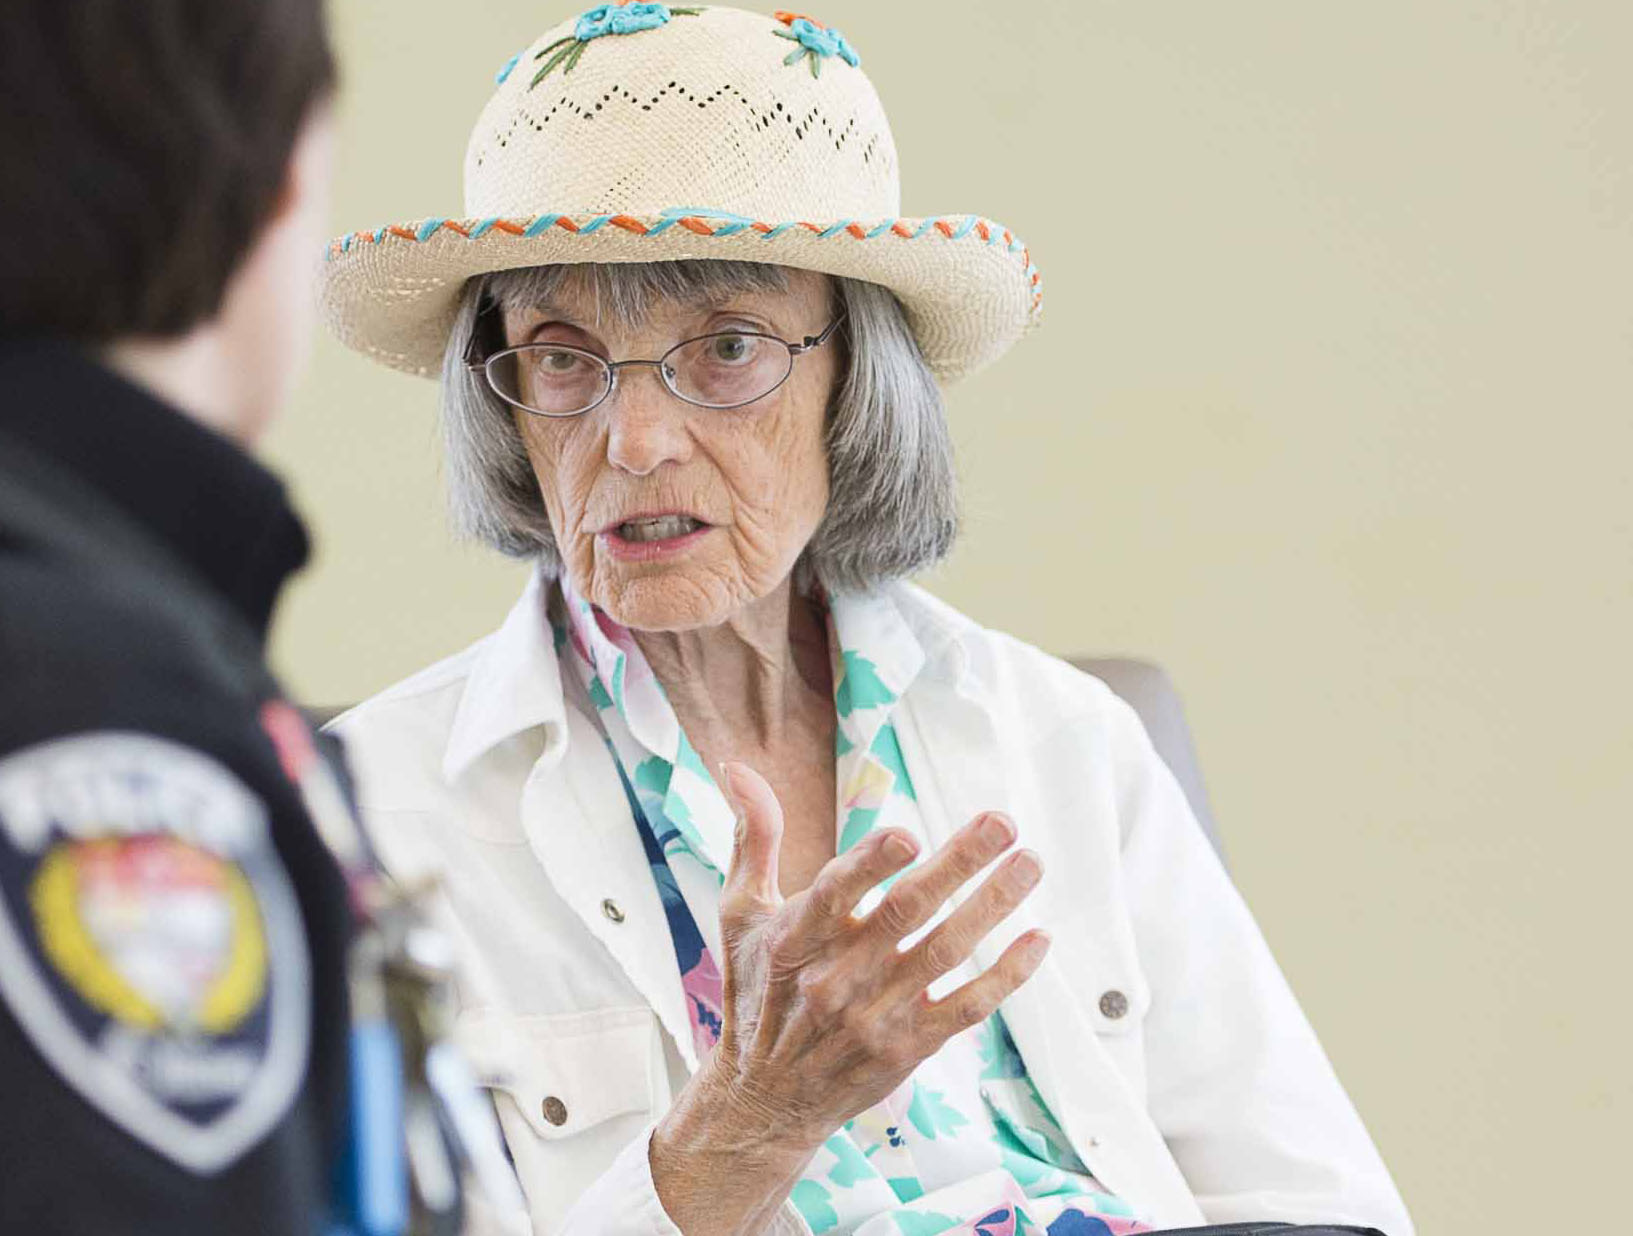 Anyone can be the victim of fraud, but elderly residents are particularly vulnerable